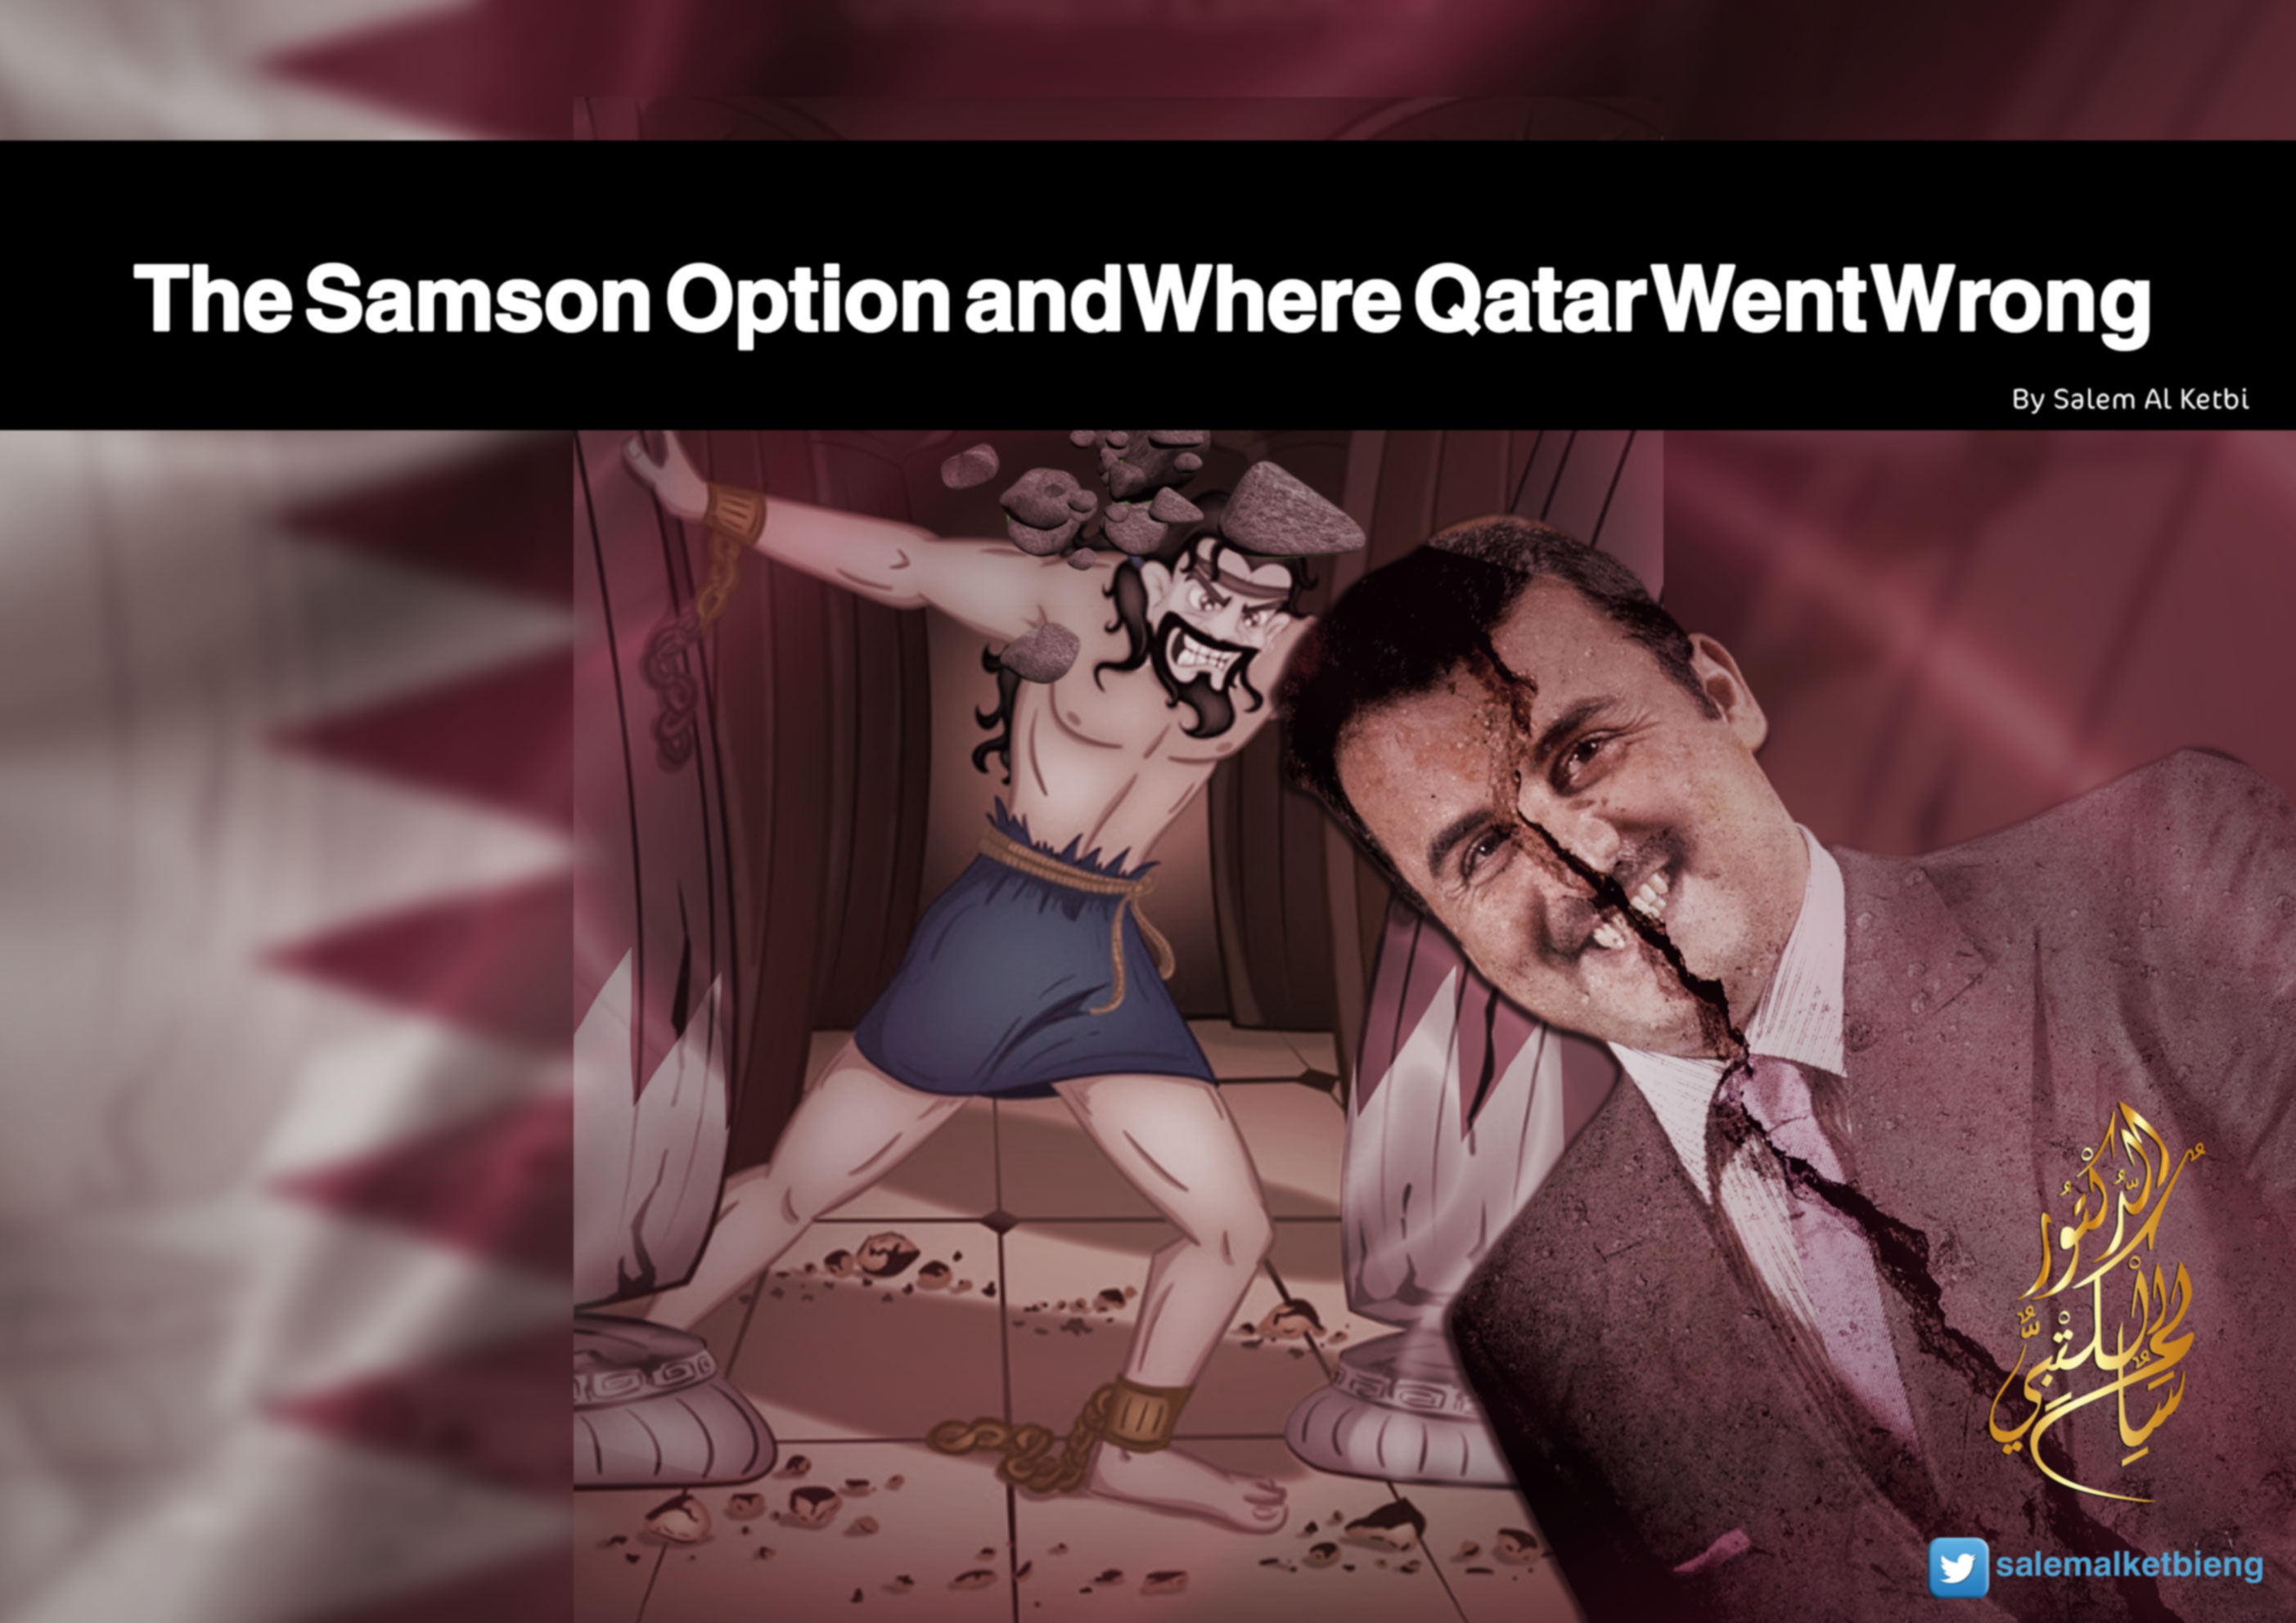 The Samson Option and Where Qatar Went Wrong